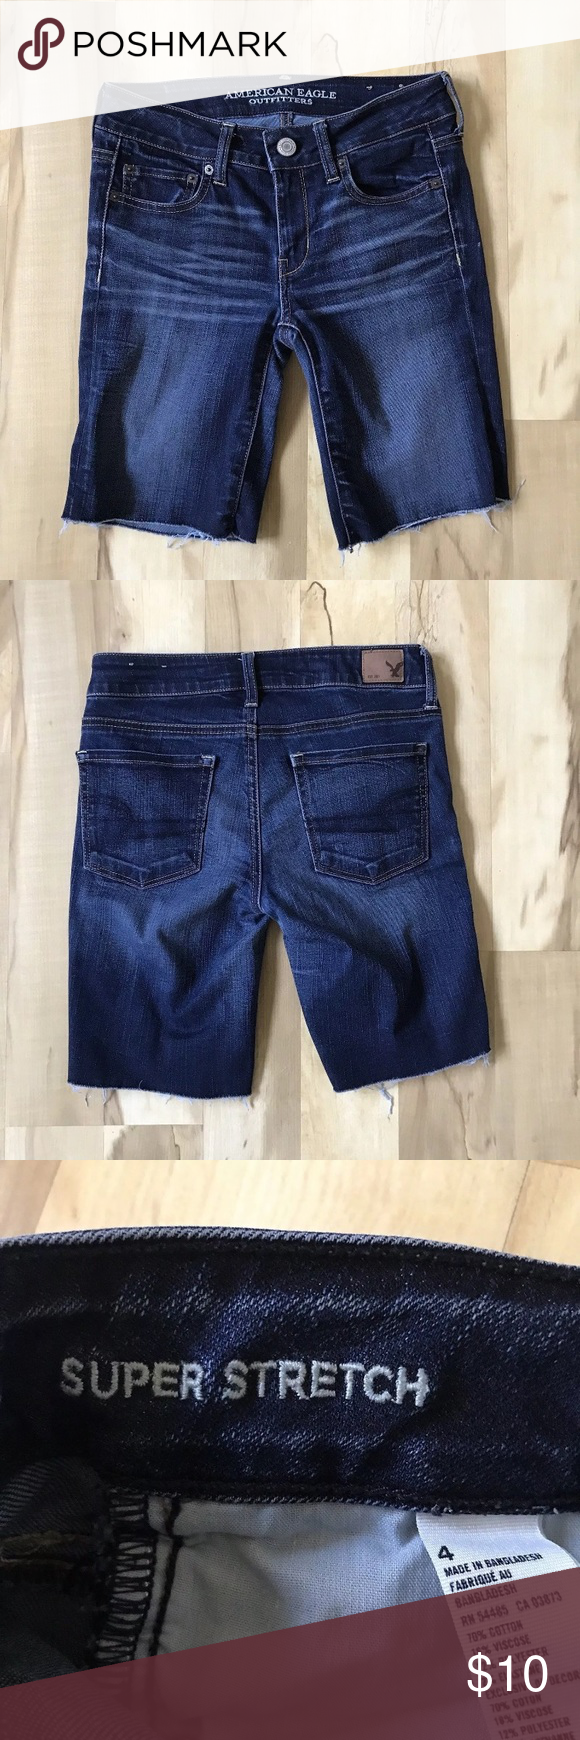 6e1d8f5053 AEO Jean Shorts Size 4 Cut Offs Super Stretch American Eagle Outfitters AEO Jean  Shorts Size